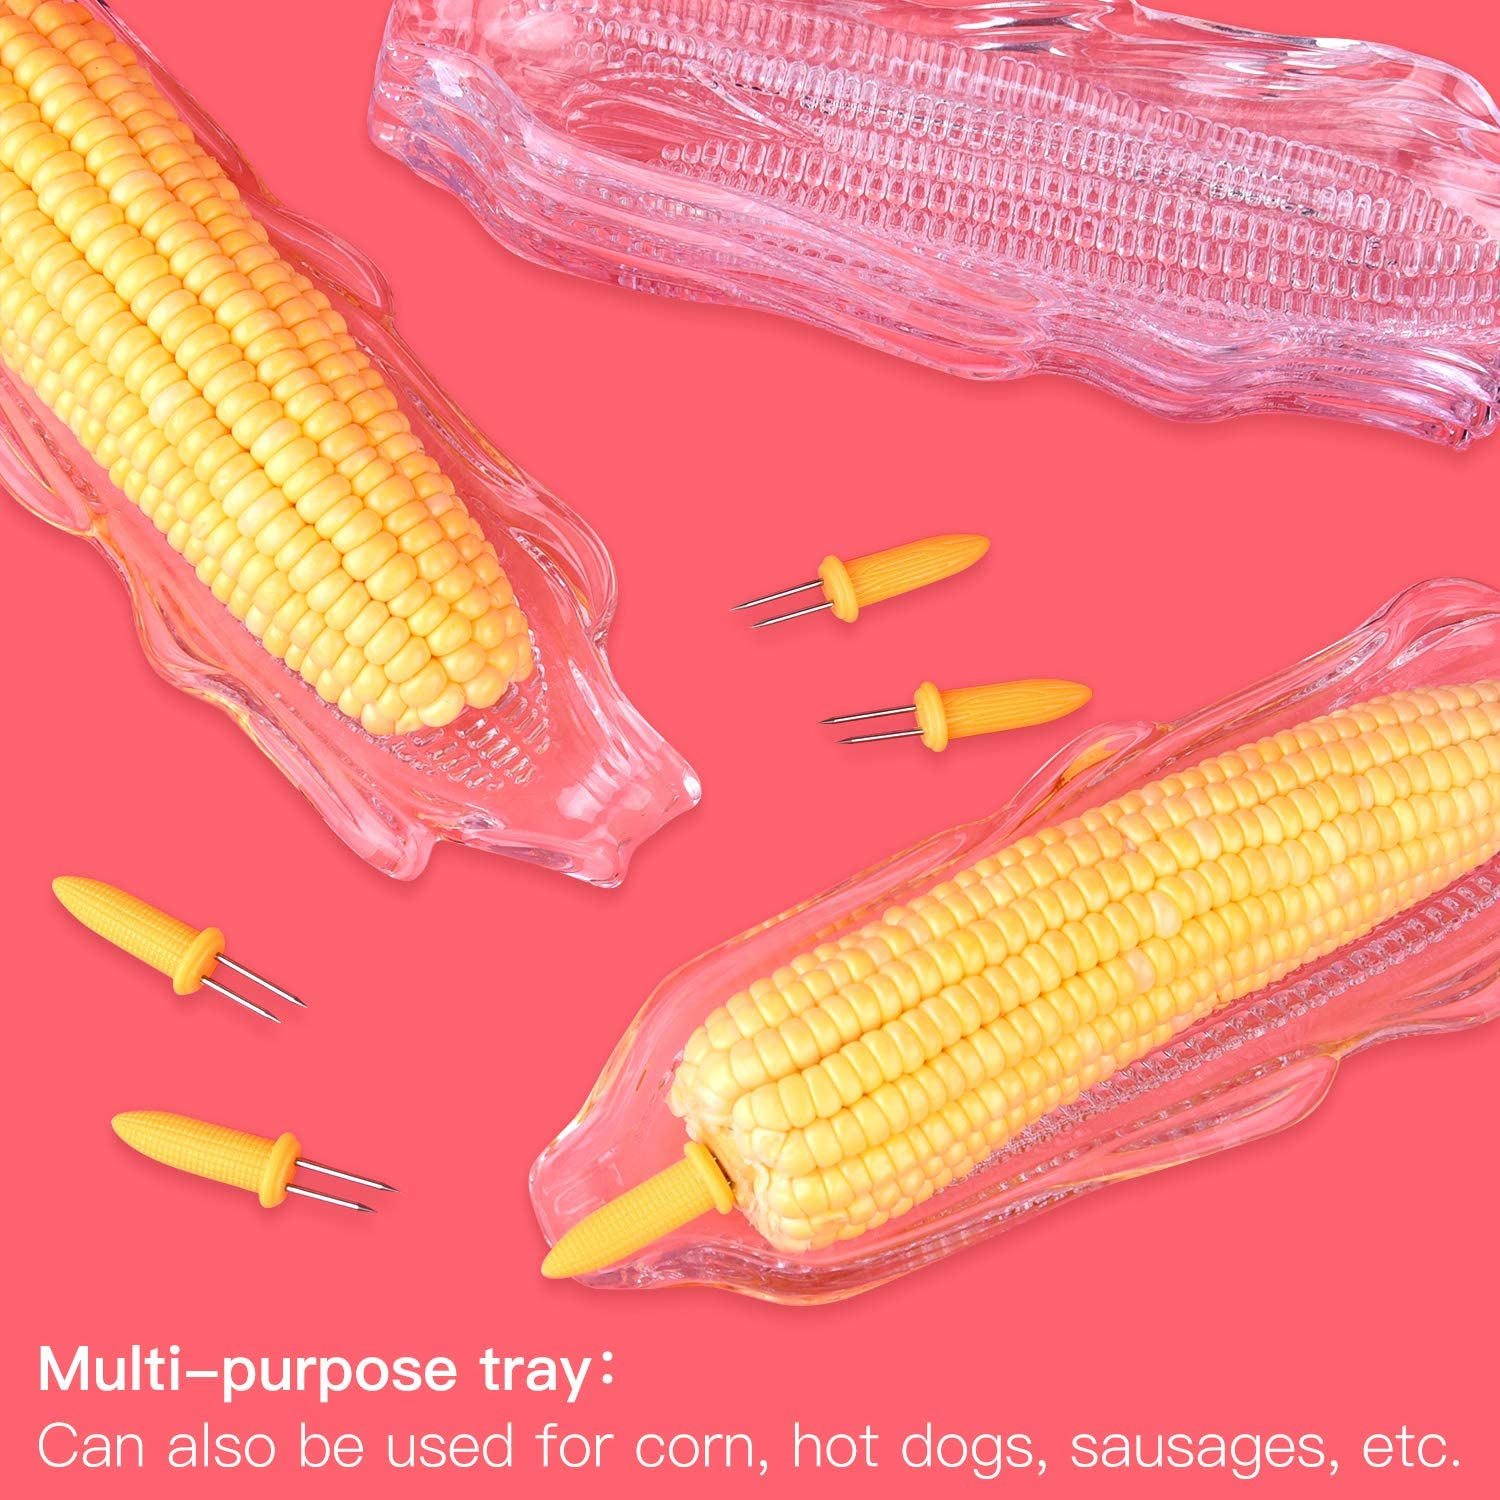 FEPITO 9 Pcs Corn Trays with 20 Pcs Corn Holders on the Cob Skewers Transparent Plastic Corn Dishes Corn Holders Cob Dinnerware for Sweet Butter Corn